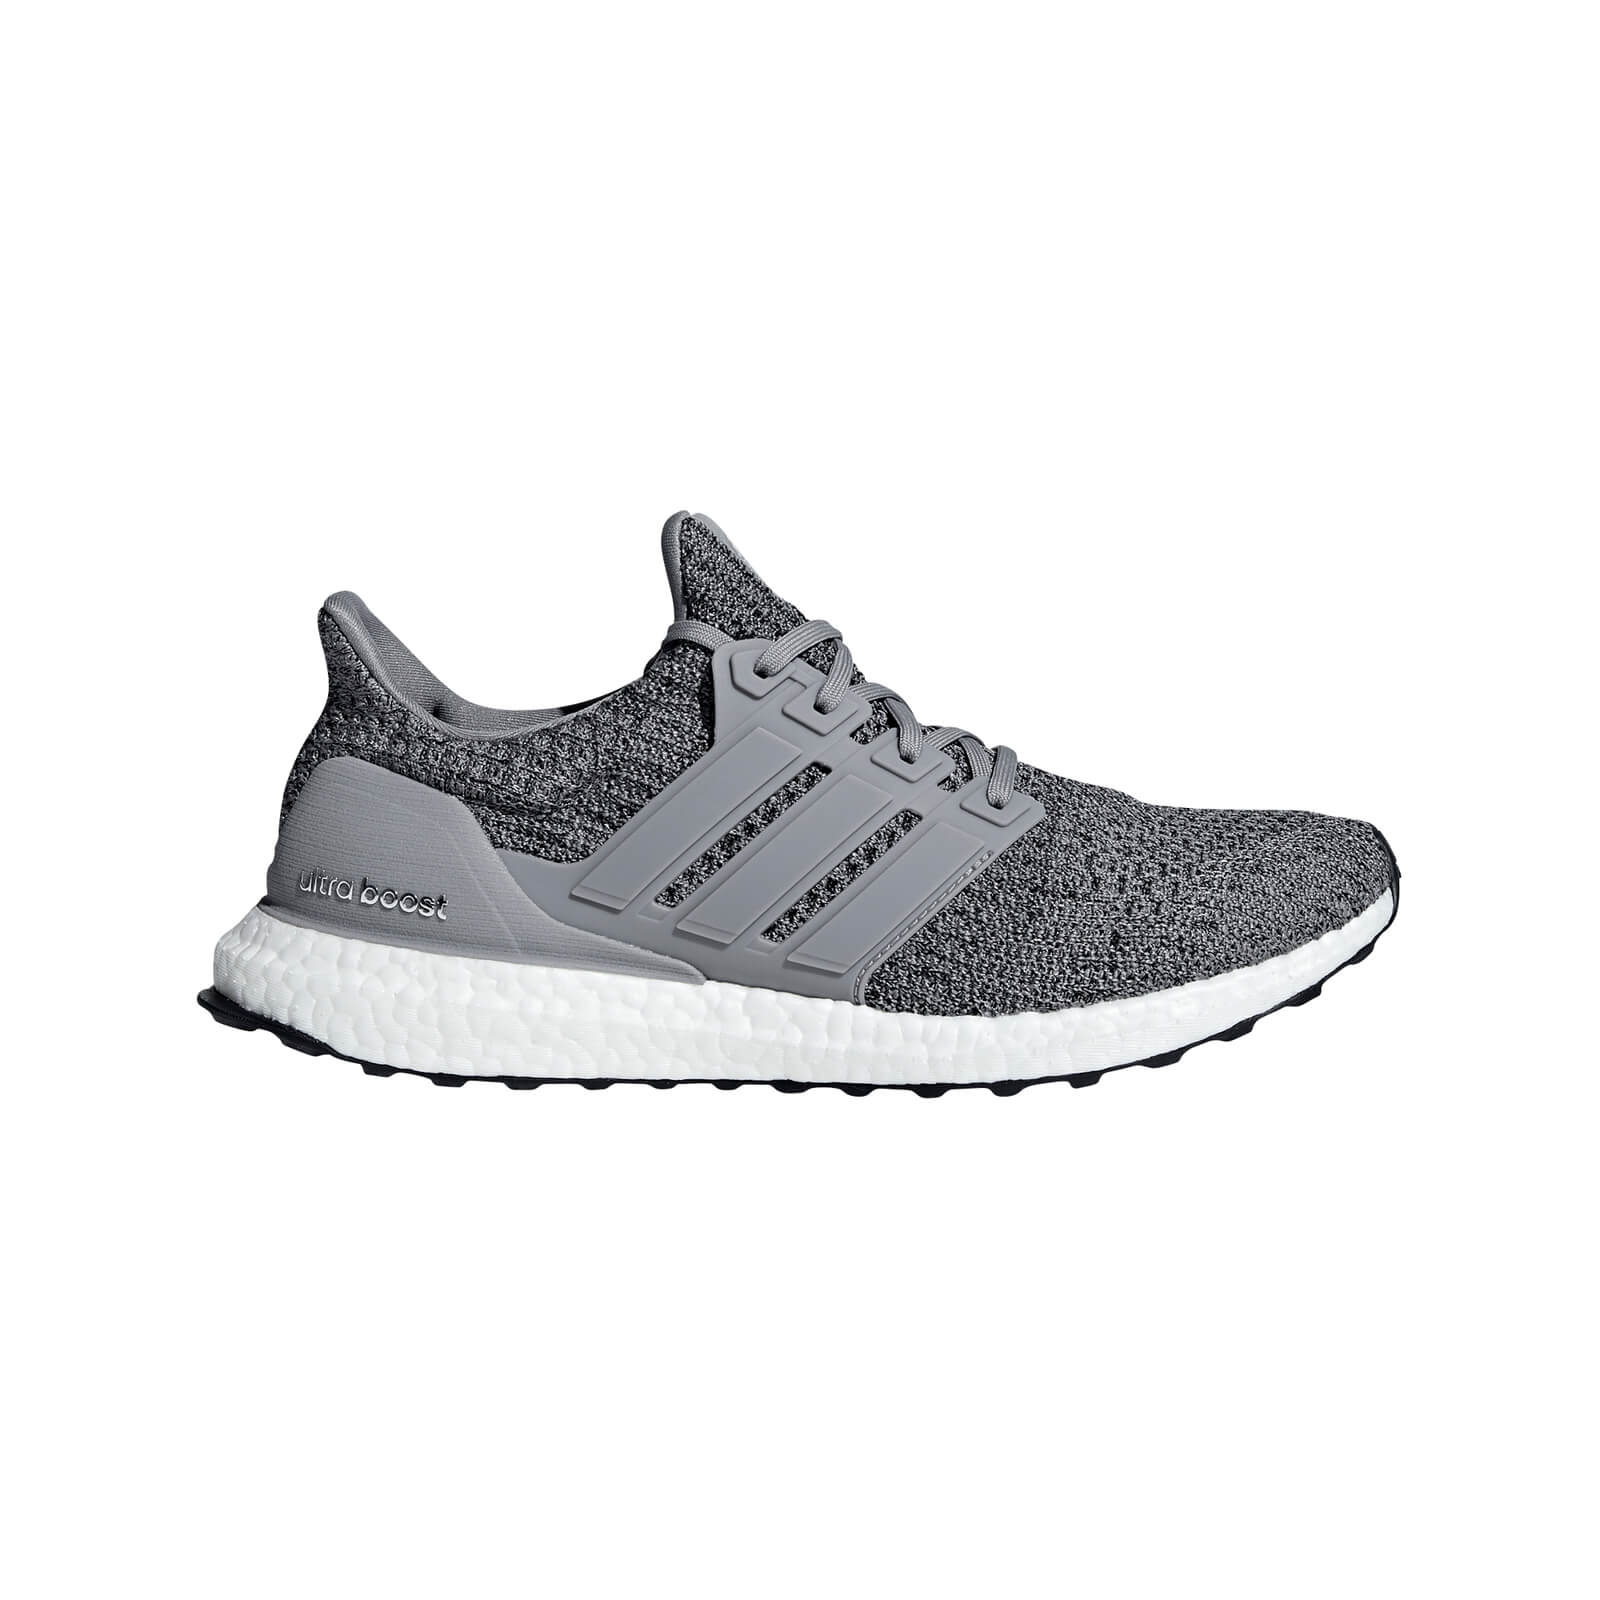 65a0ce8b7c59f adidas Men s Ultraboost Running Shoes - Dark Grey Three